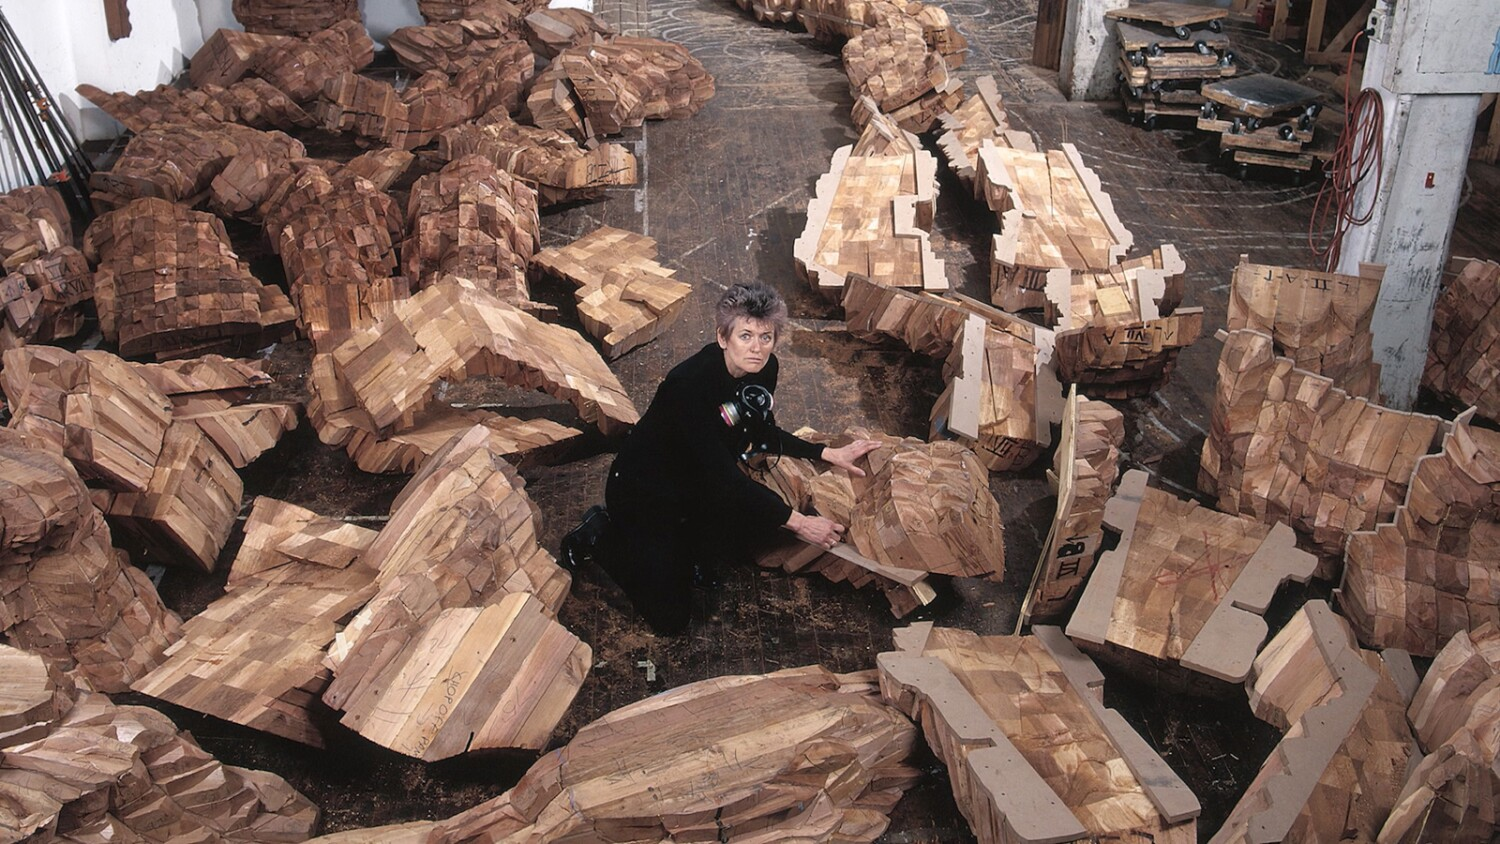 Review: 'Ursula von Rydingsvard: Into Her Own' is a movie you want to reach out...